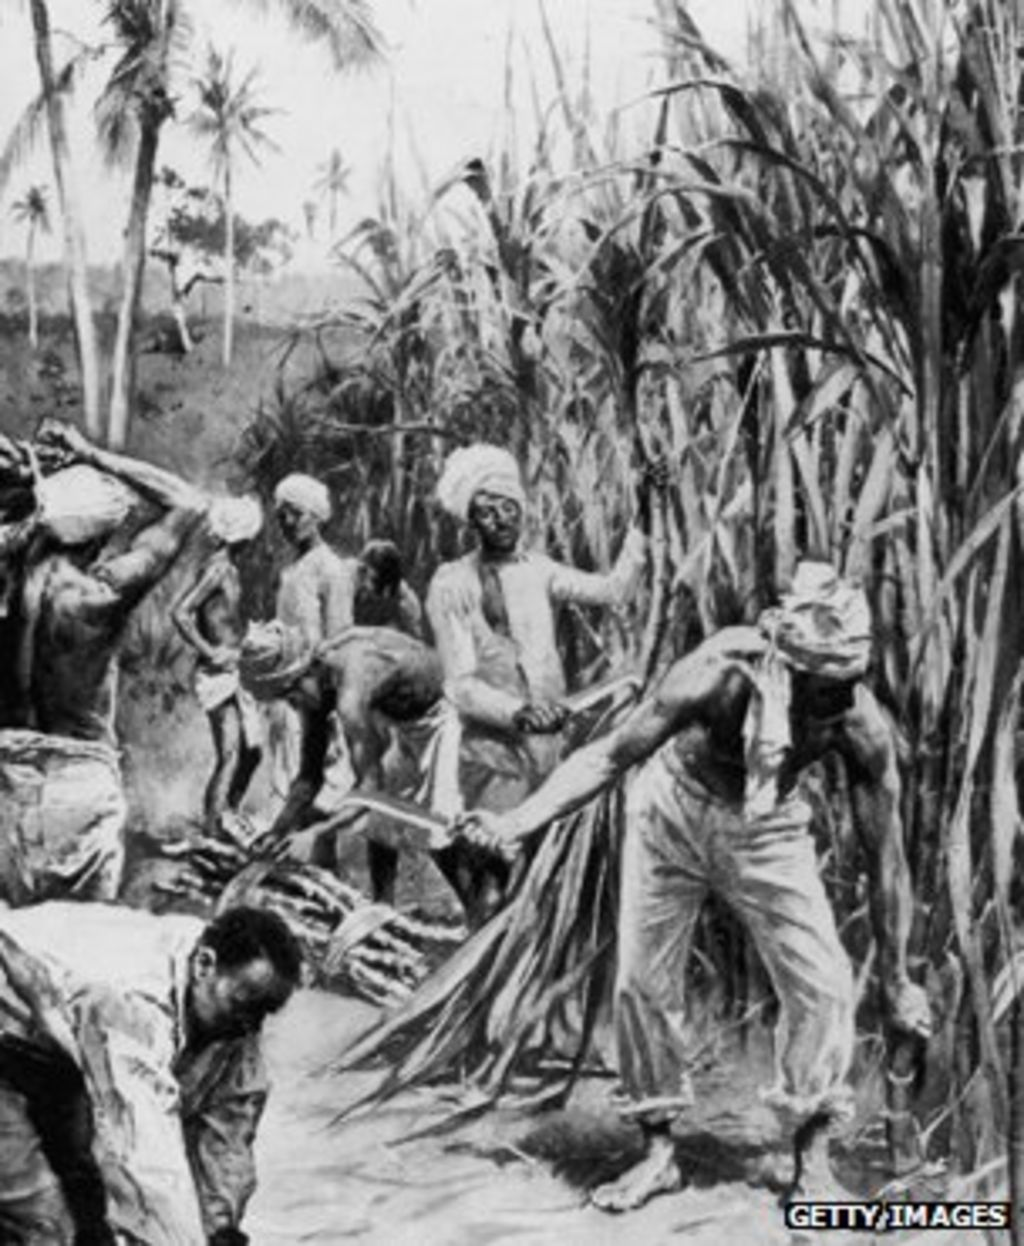 an introduction to the history and the issue of slavery in todays society Introduction reconstruction, one of the most turbulent and controversial eras in american history, began during the civil war and ended in 1877.